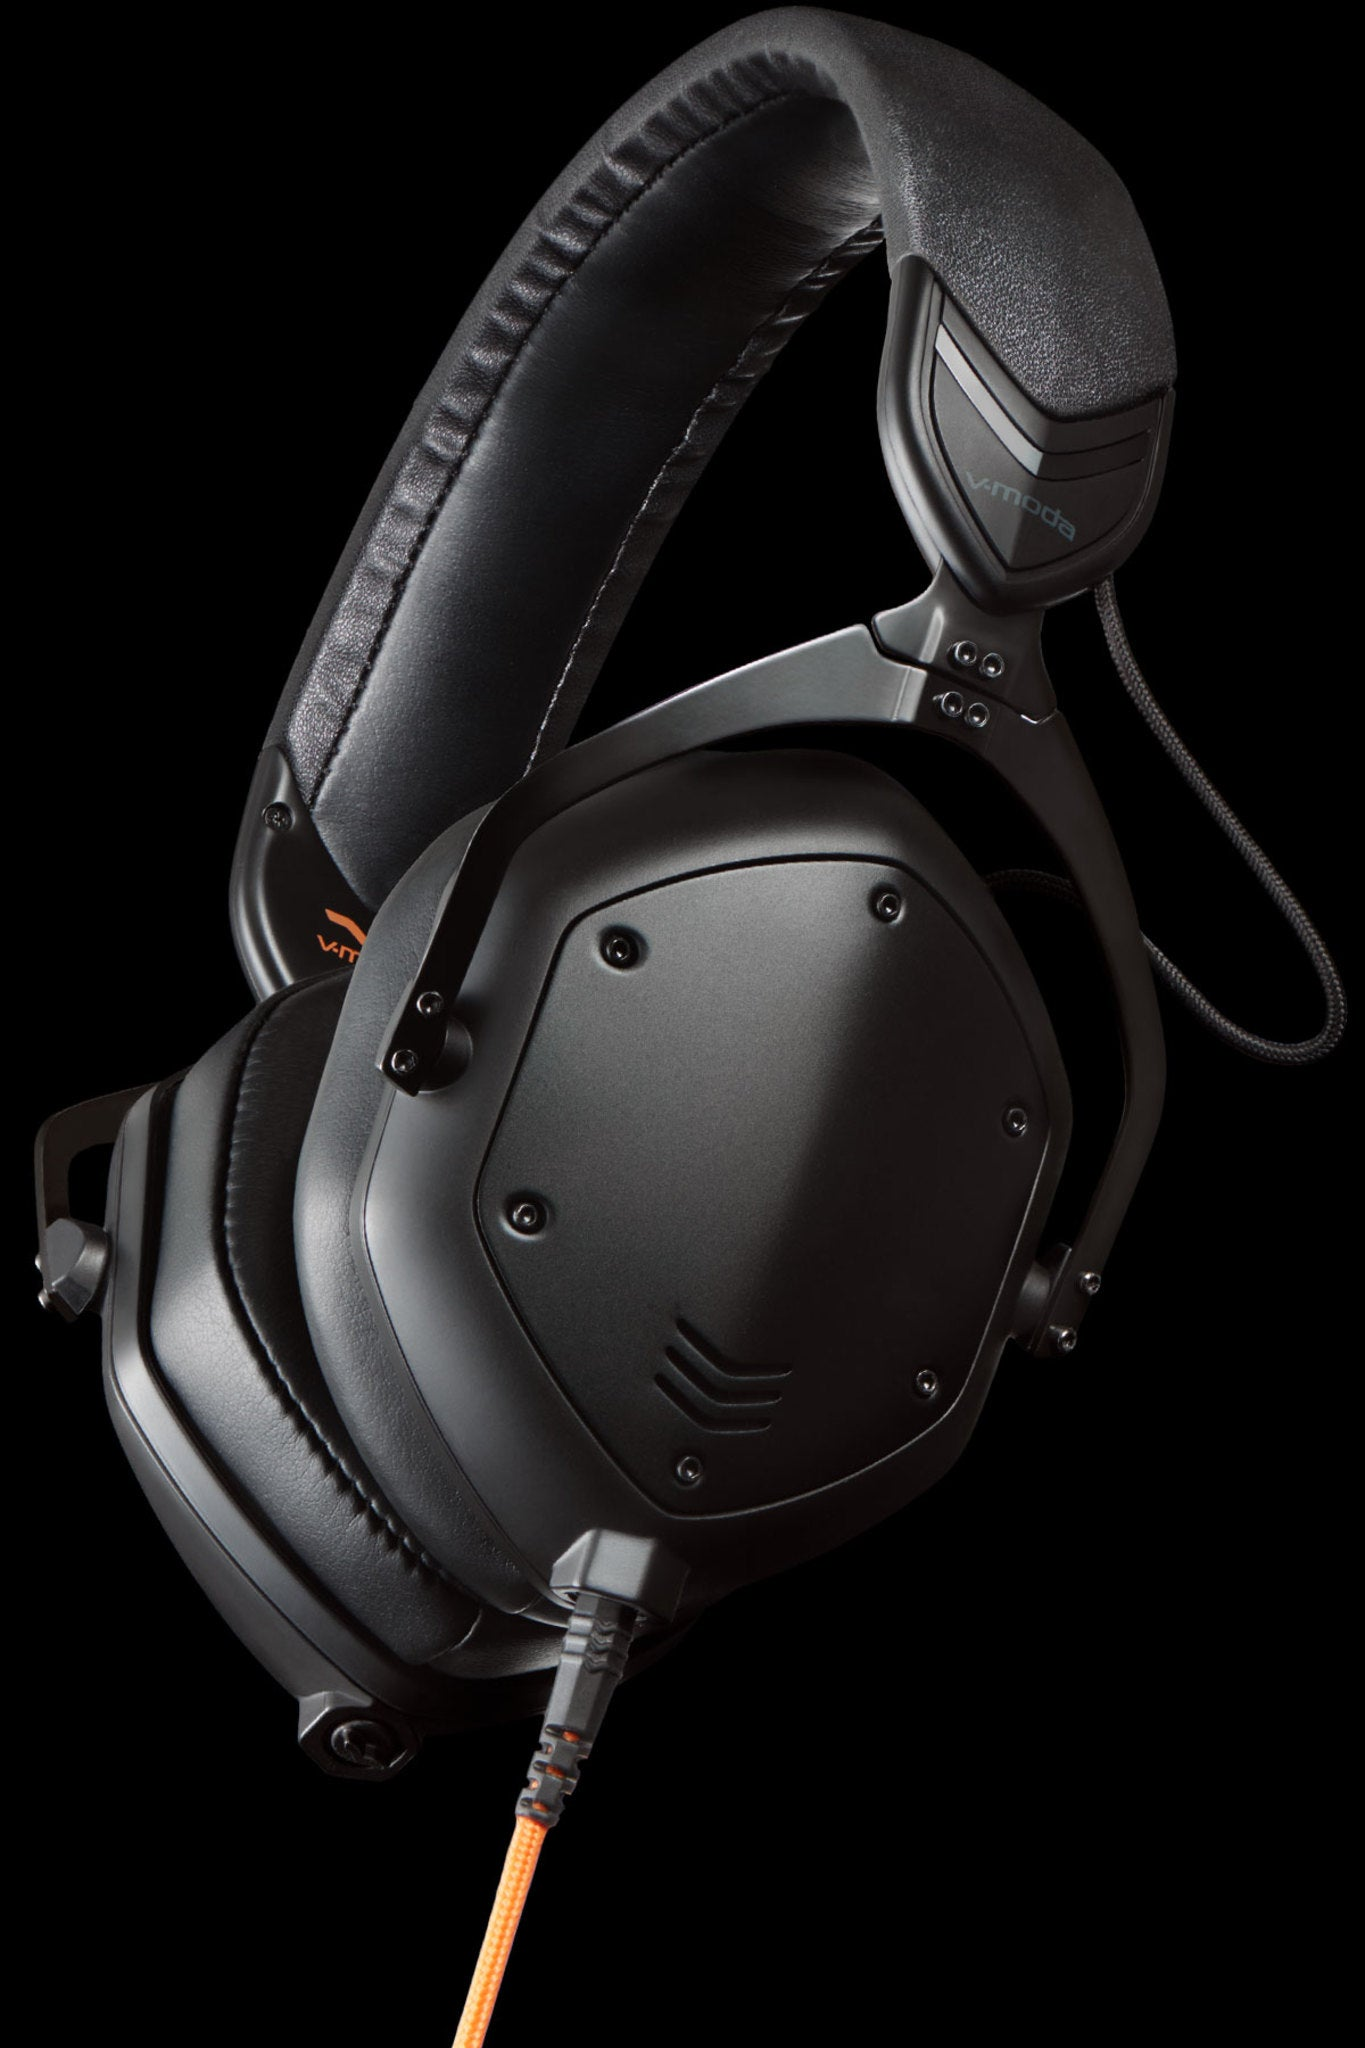 V-Moda Crossfade M-100 Master Around Ear Headphones